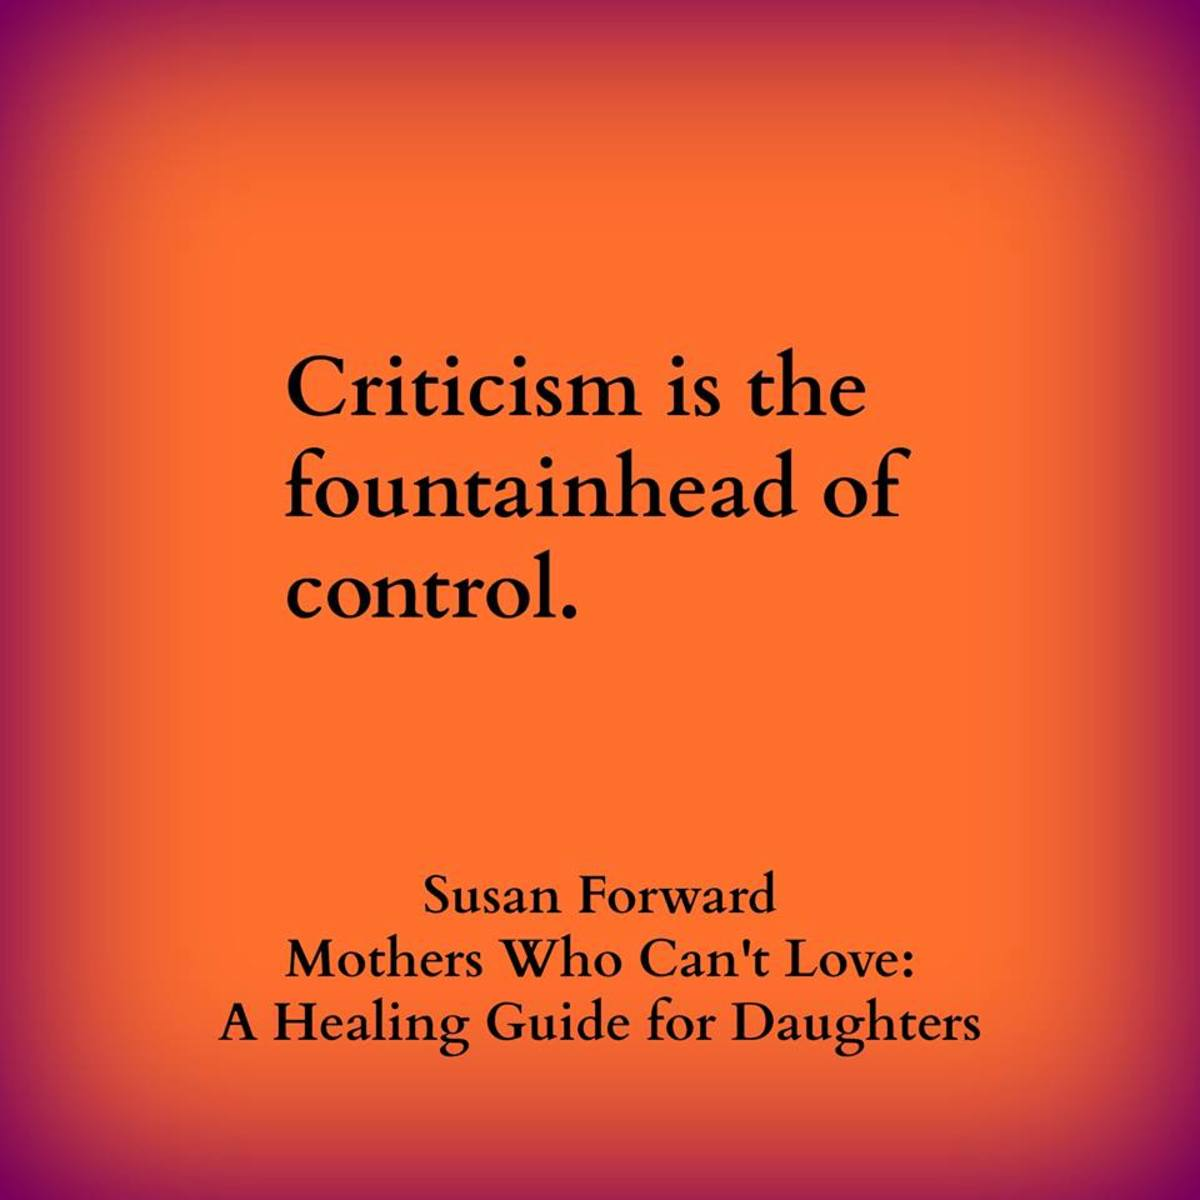 """Criticism is the fountainhead of control."" - Dr. Susan Forward, Mothers Who Can't Love: A Healing Guide for Daughters"